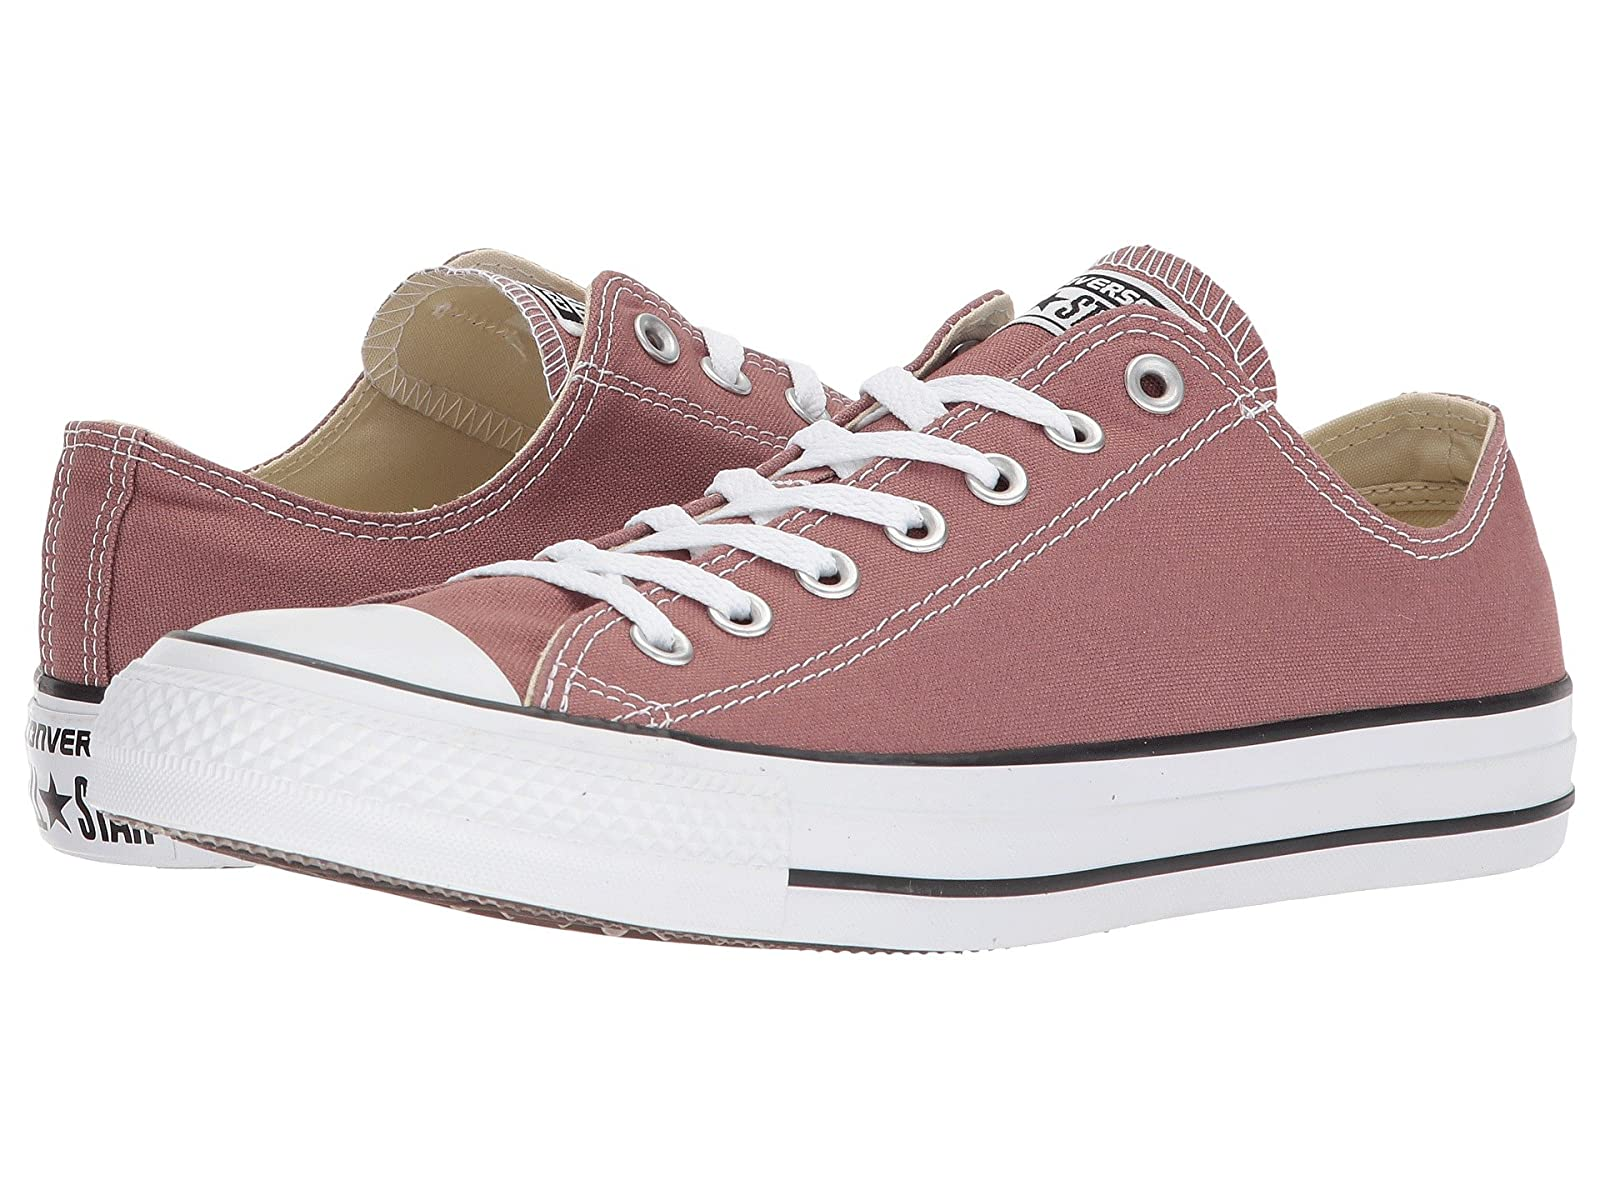 Converse Chuck Taylor All Star Seasonal OxCheap and distinctive eye-catching shoes